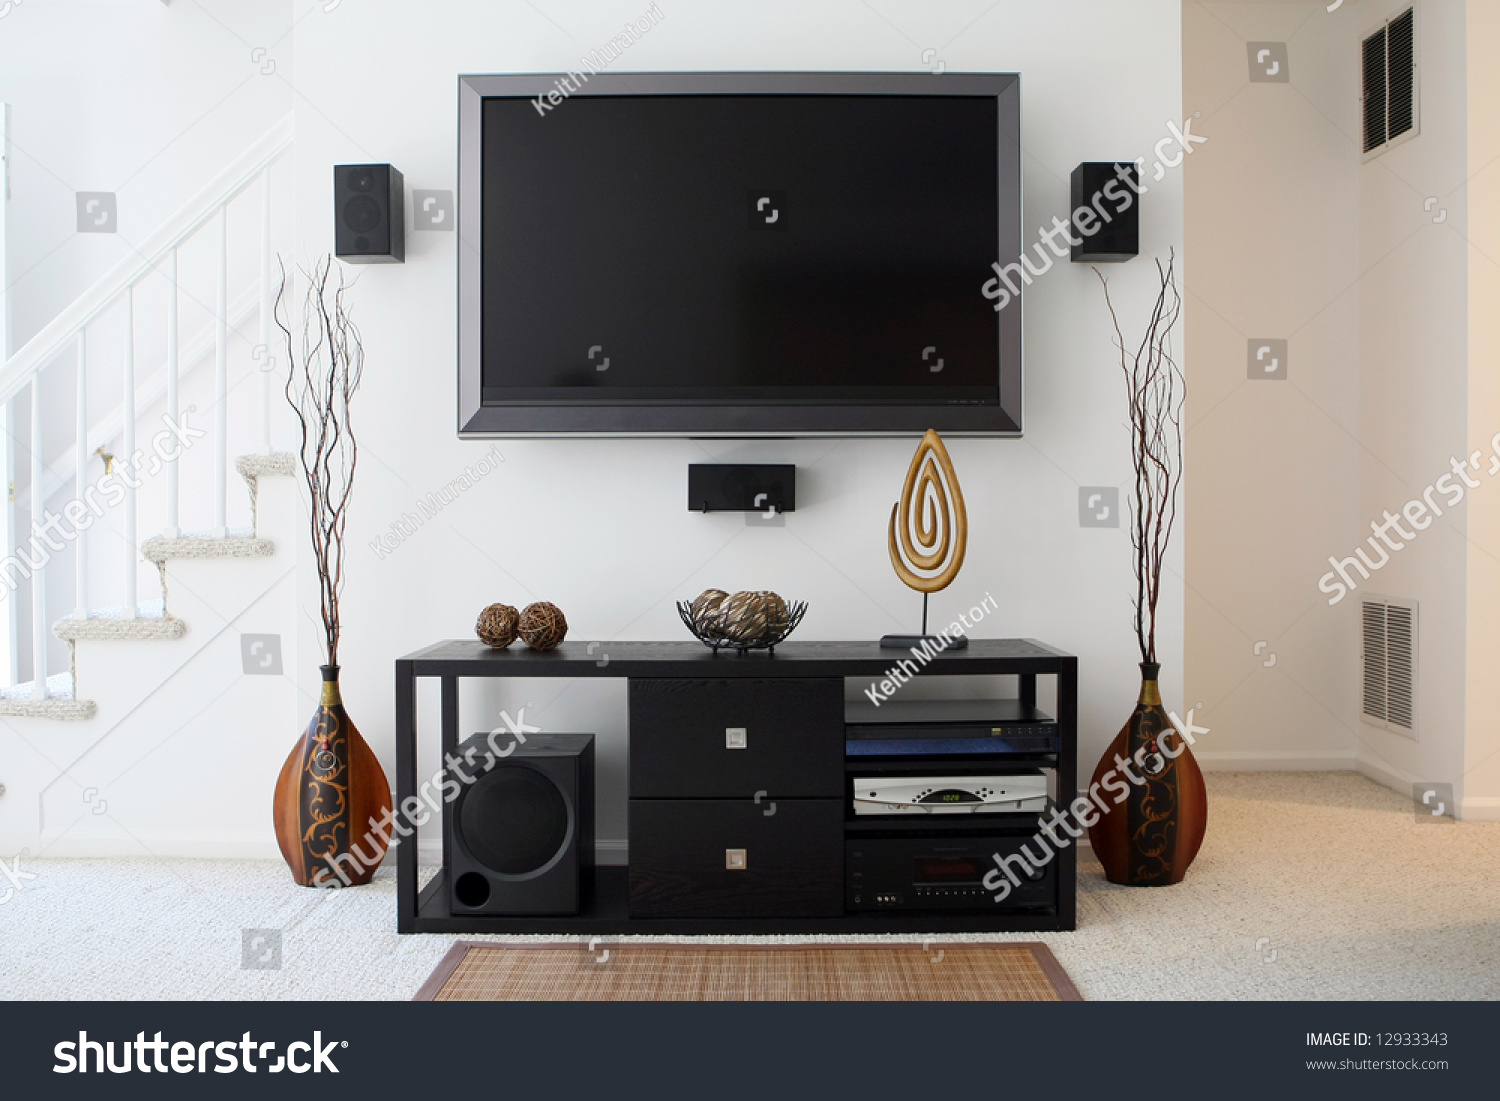 Home theater in living room stock photo 12933343 shutterstock - Living room home theater ...